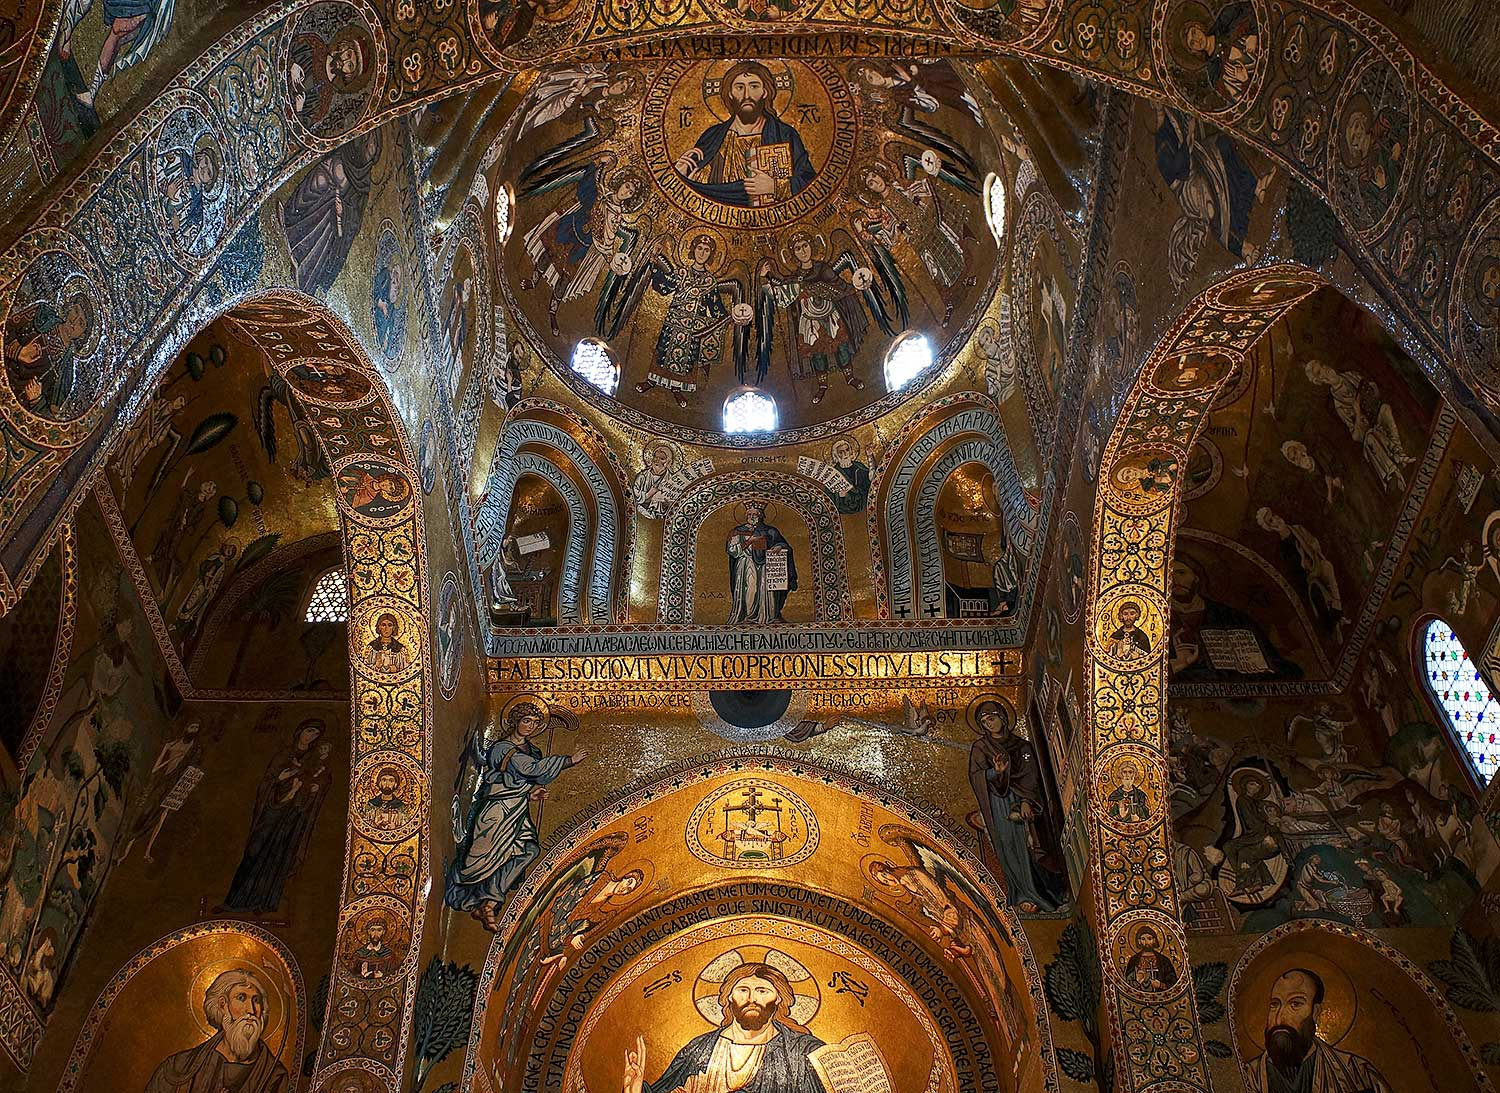 The Cappella Palatina in the Norman palace in Palermo